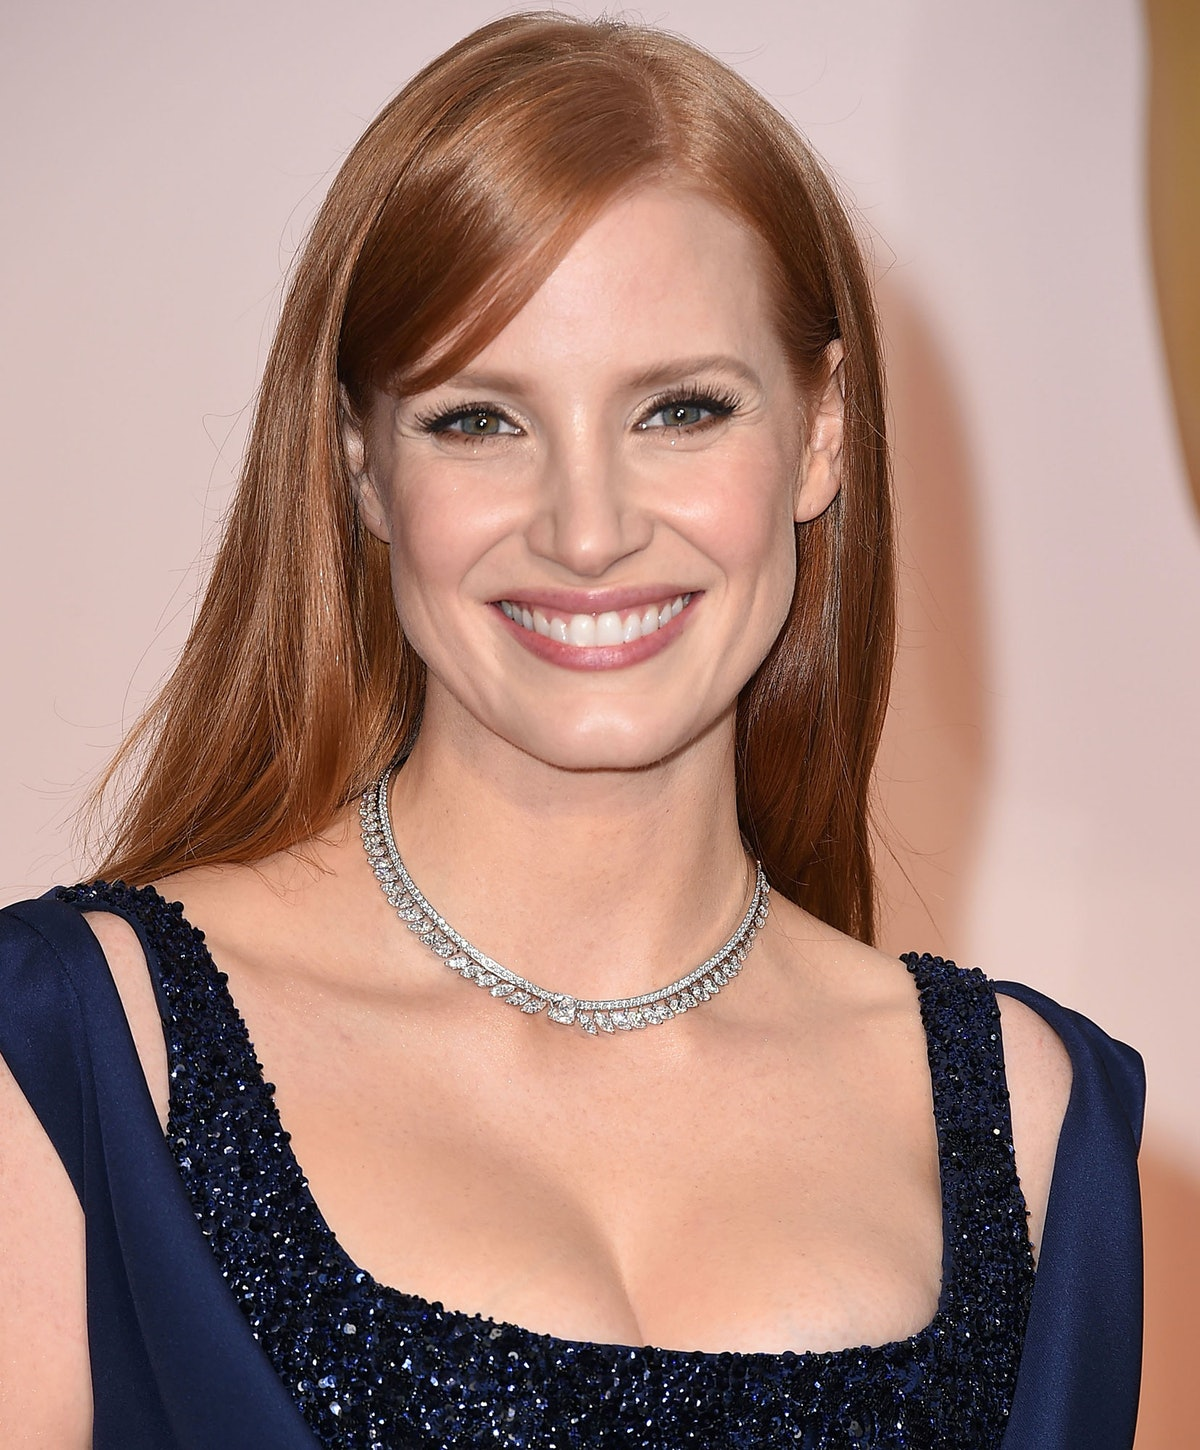 Jessica Chastain in a Piaget necklace